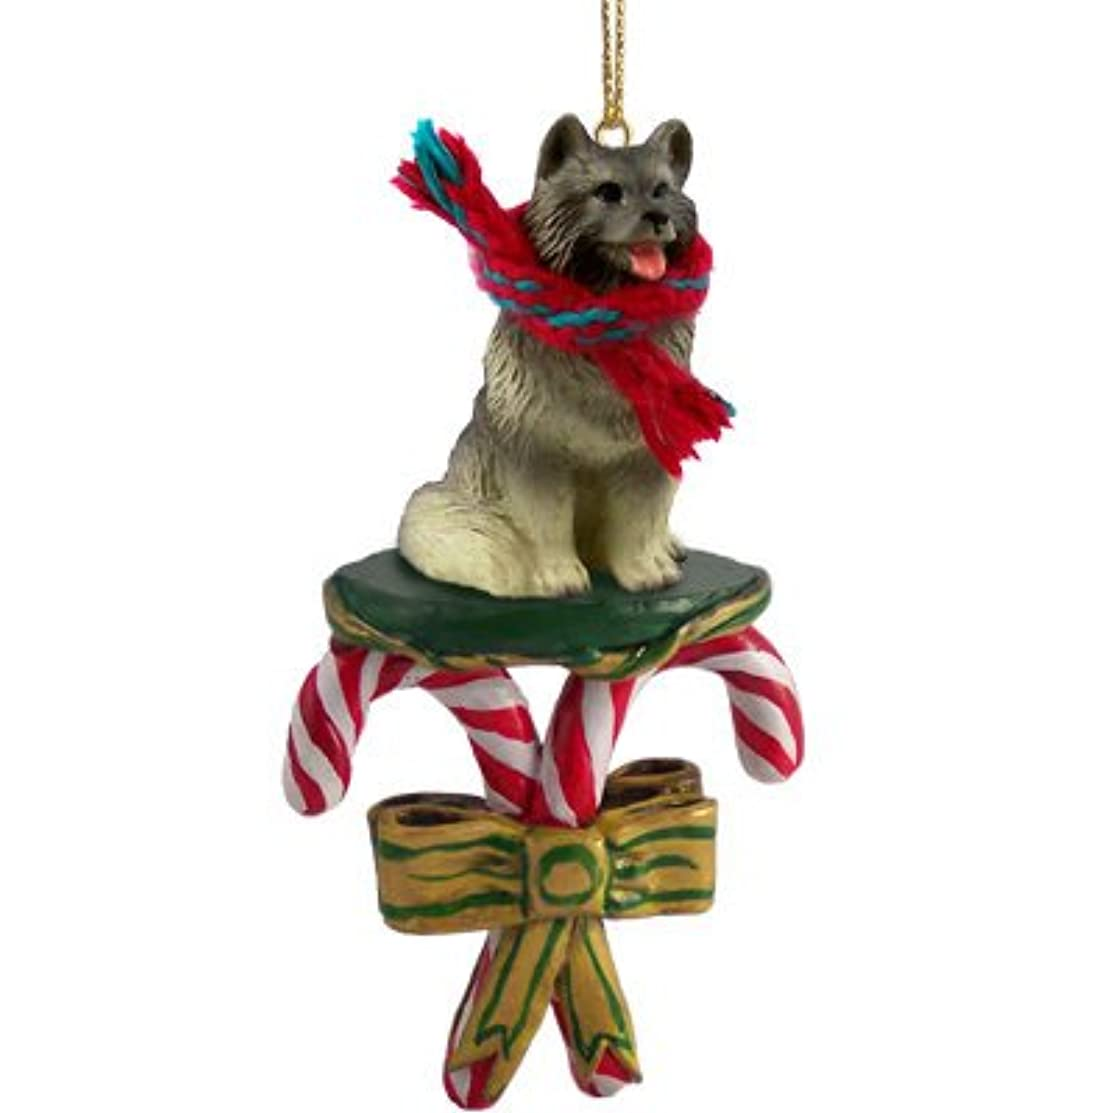 KEESHOND Dog CANDY CANE Resin Figurine New Christmas Ornament DCC32